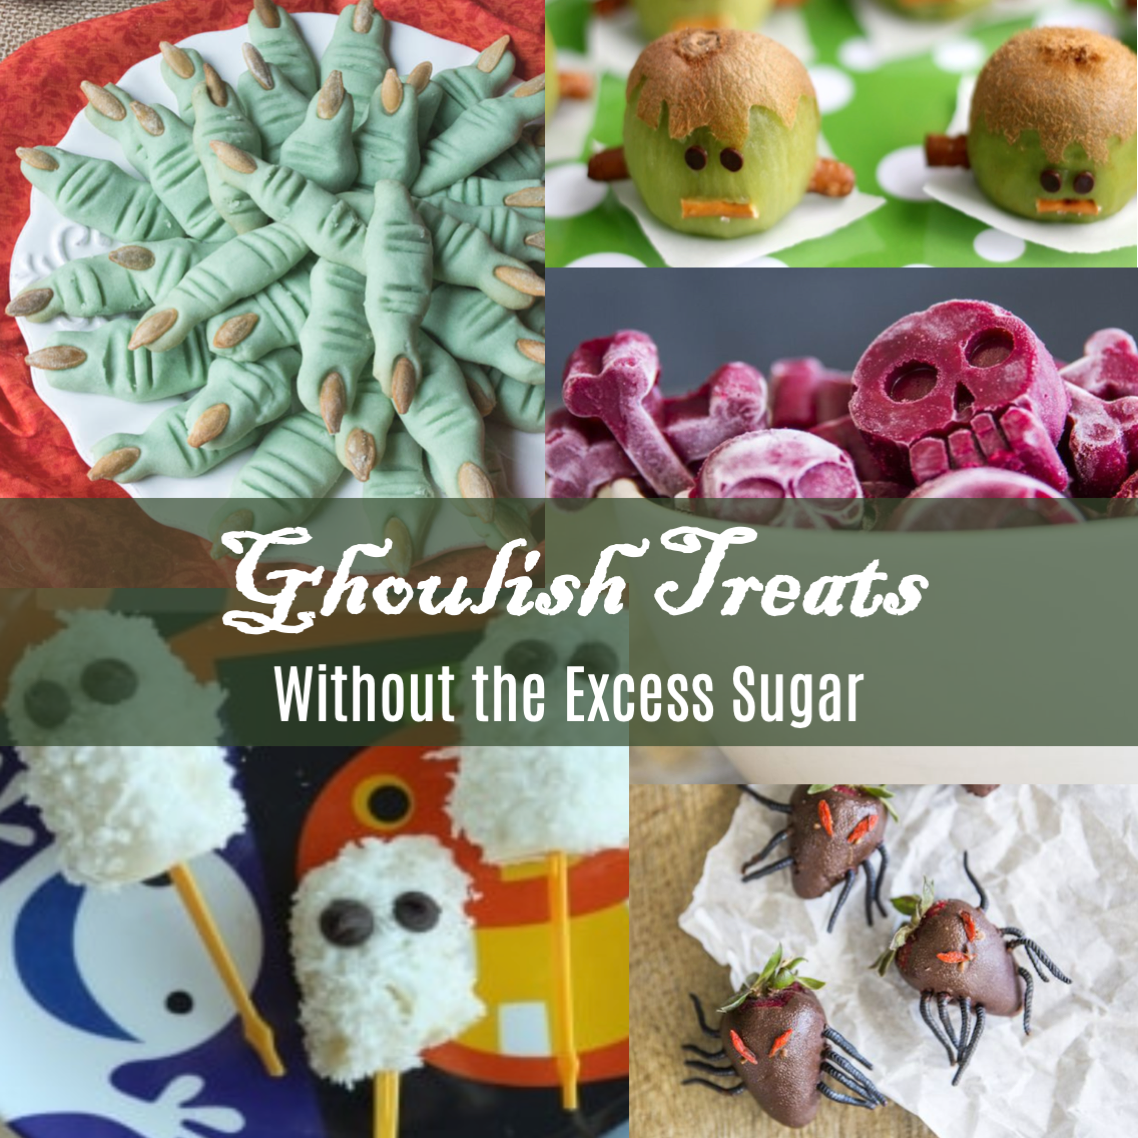 Ghoulish Treats Without The Excess Sugar